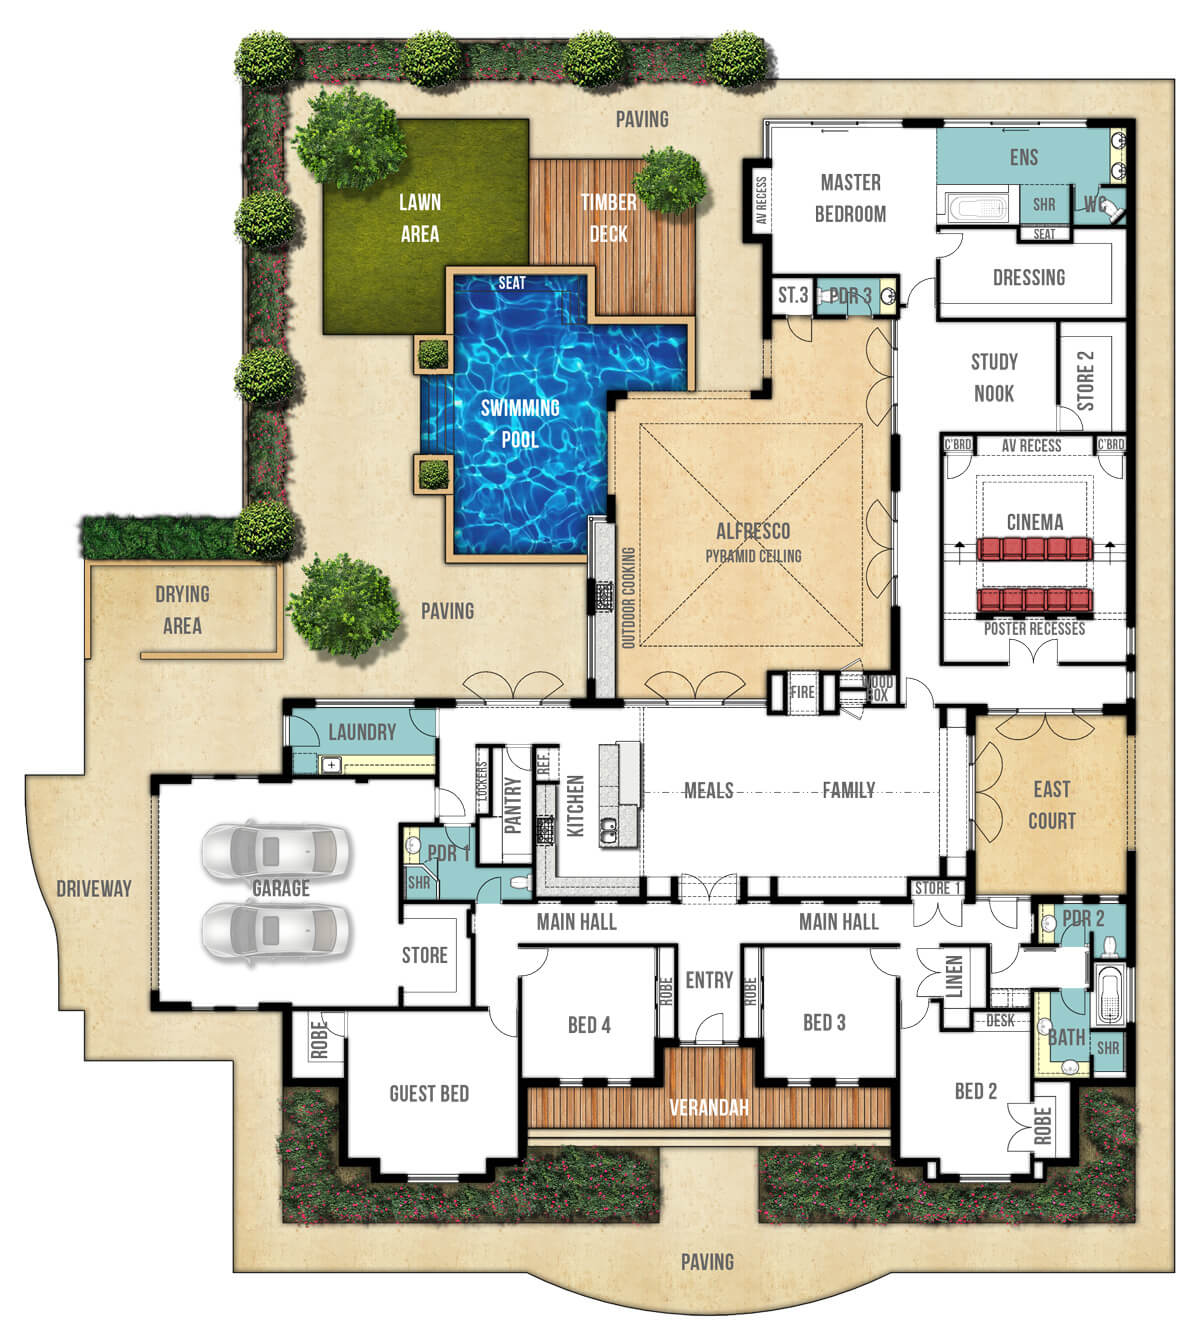 388787380323491219 moreover Sims 4 House Blueprints additionally No Tub For The Master Bath Good Idea Or Regrettable Trend further 30x30 House Plans together with So Sehen Die Grundrisse Der Wohnungen In Tv Serien Aus 6520842. on two and a half men house floor plan